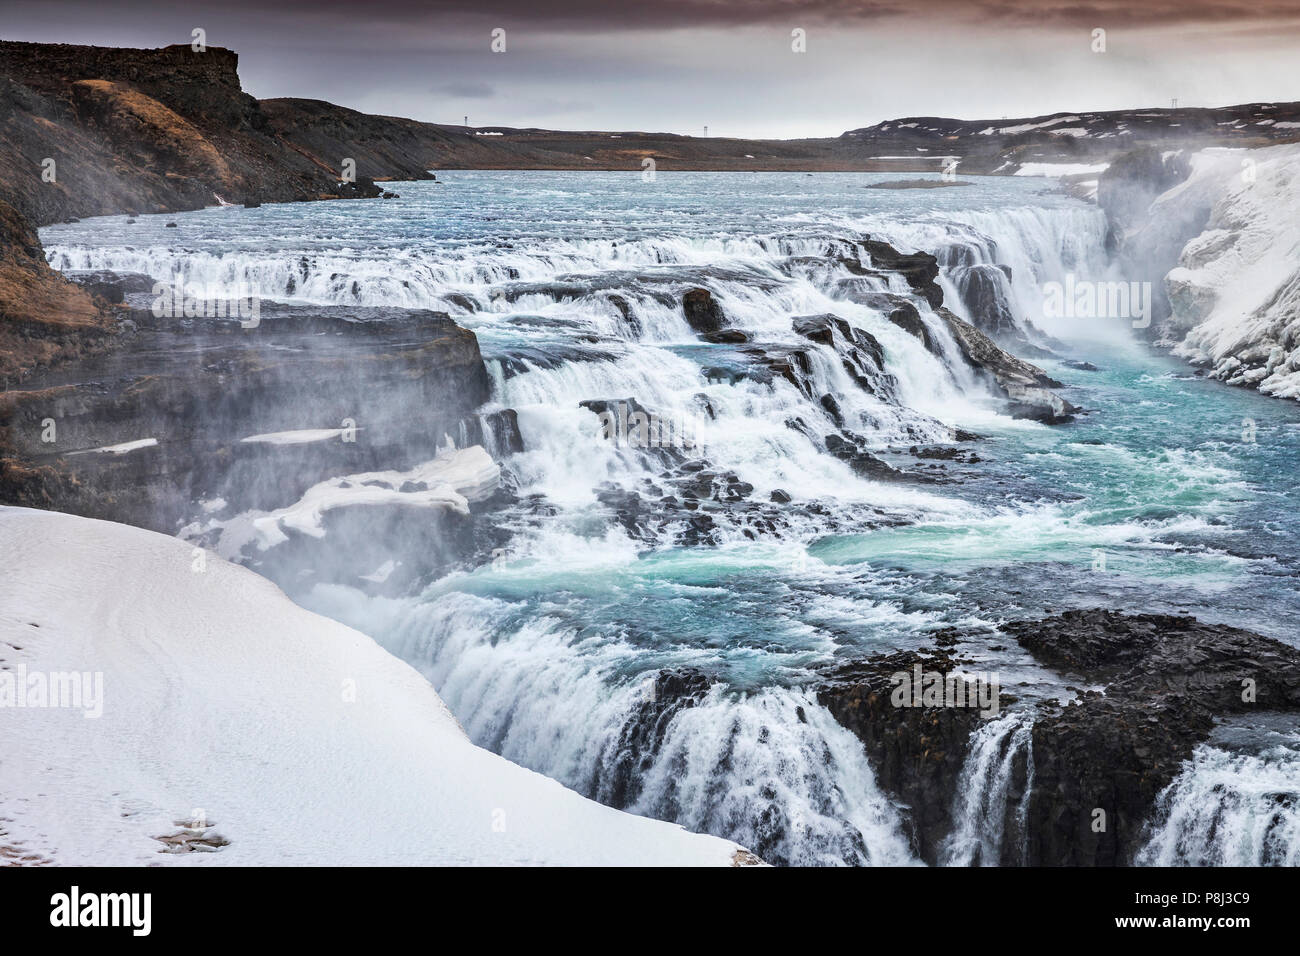 Gullfoss waterfall, Iceland - Stock Image